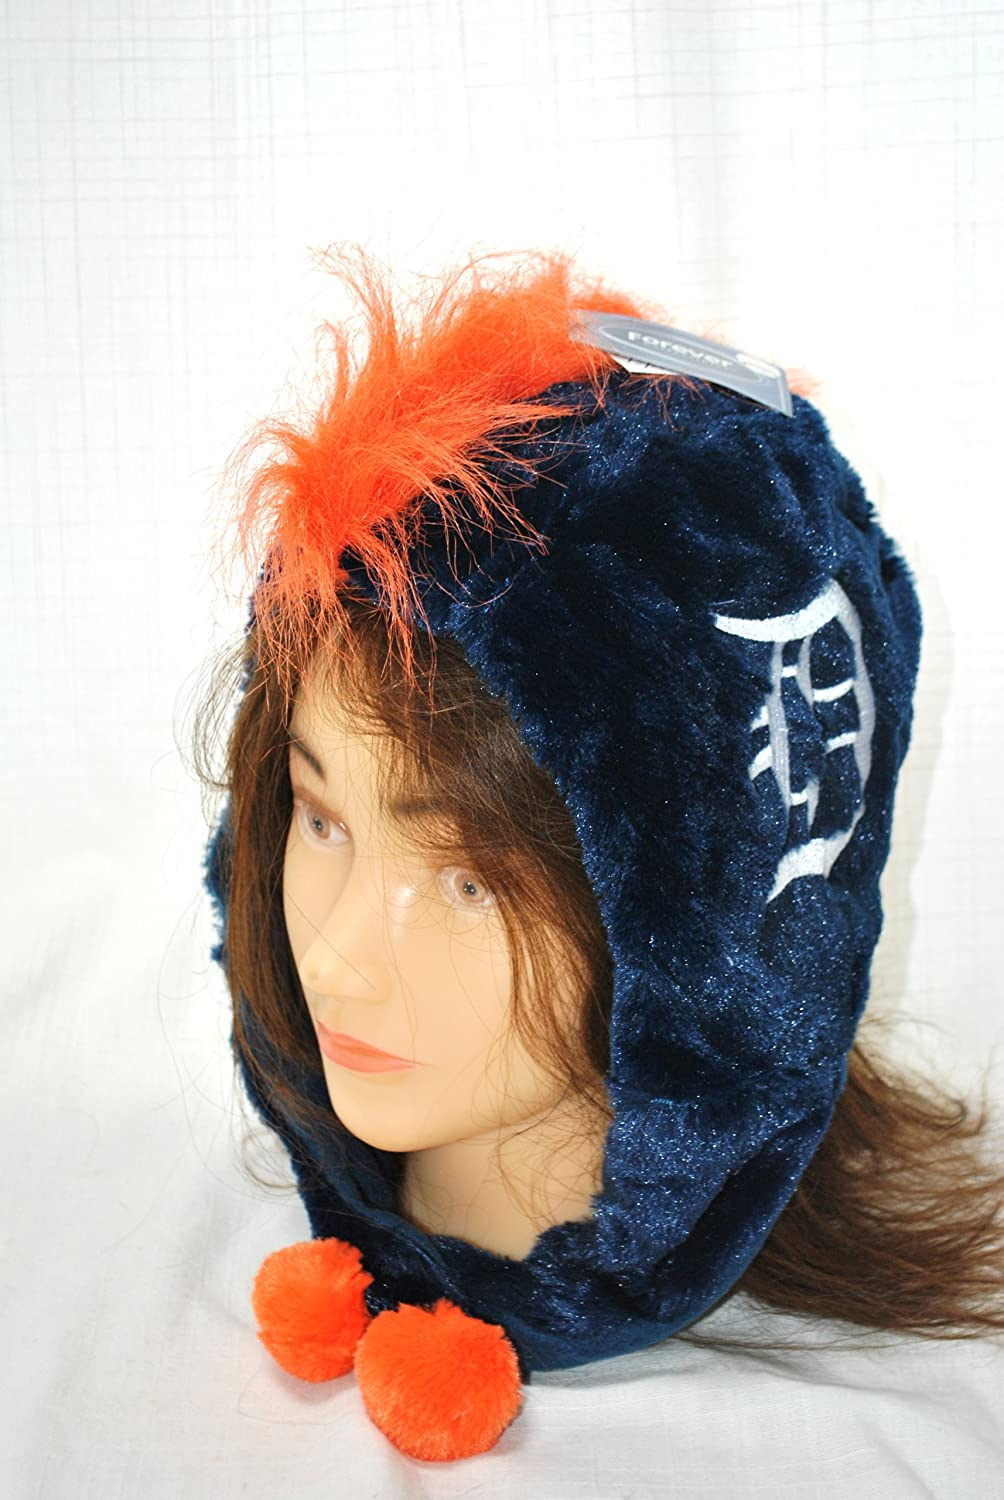 FOCO MLB Unisex 2012 Mohawk Short Thematic Hat